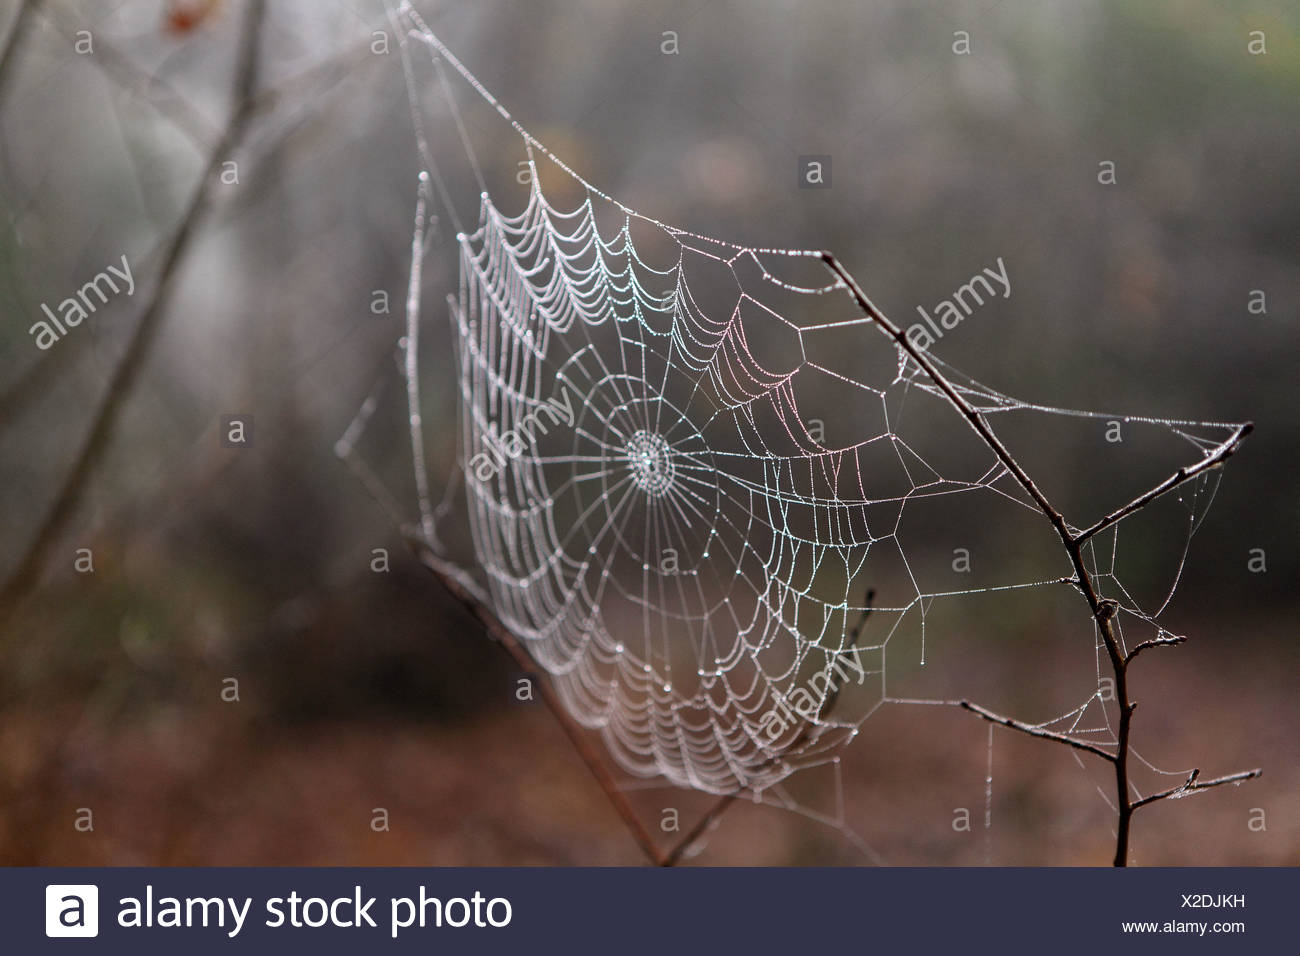 Dew on a spider's web - Stock Image